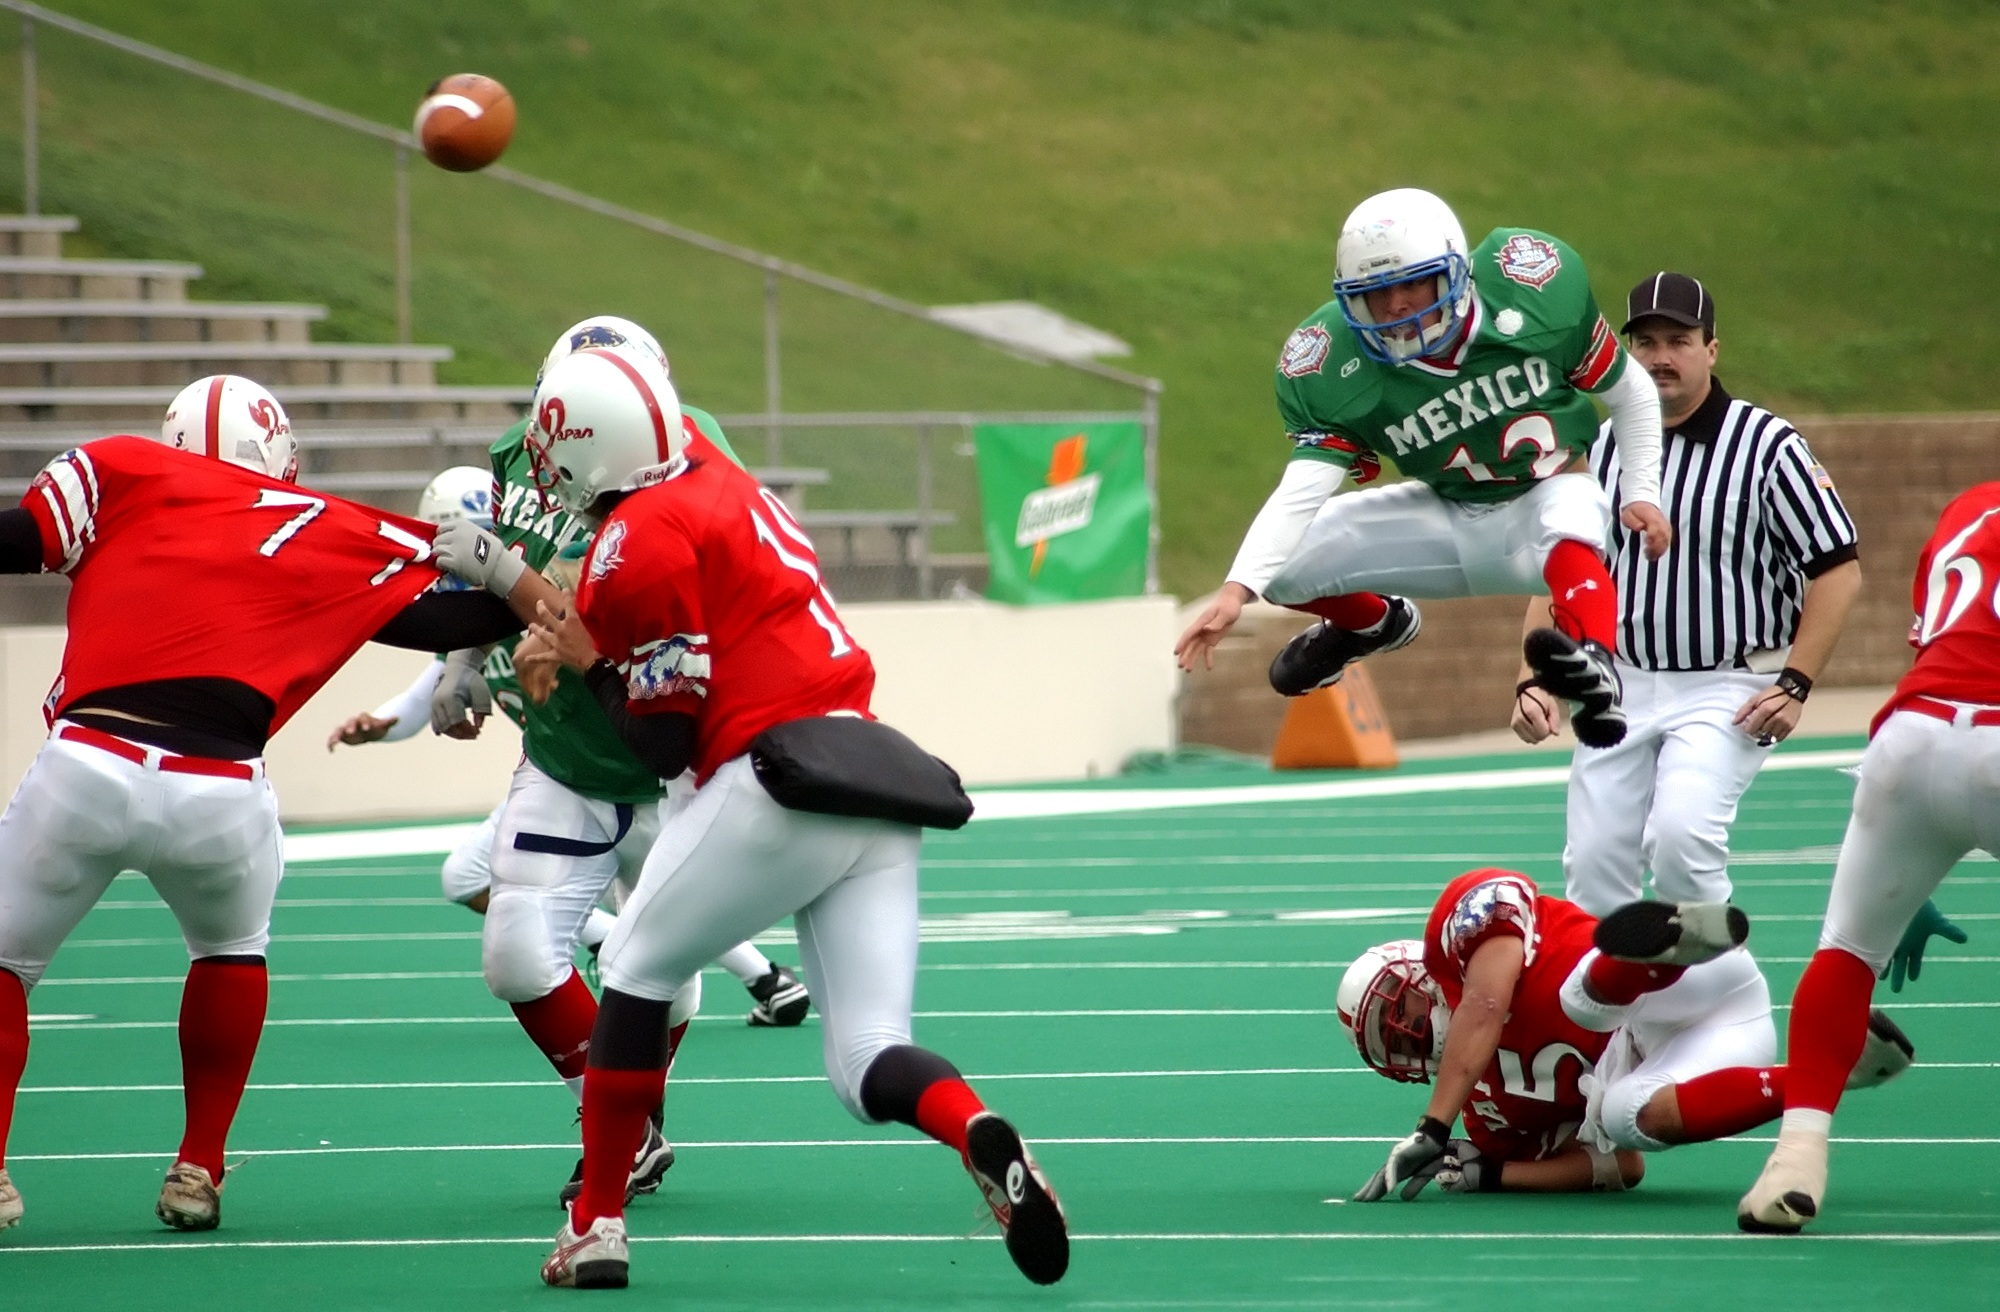 an analysis of football and baseball as american pastime Baseball vs football which is the true american pastimein todays world of big time professional sports there are the two major players and they are football represented by the national football league (nfl) and baseball represented by major league baseball (mlb.